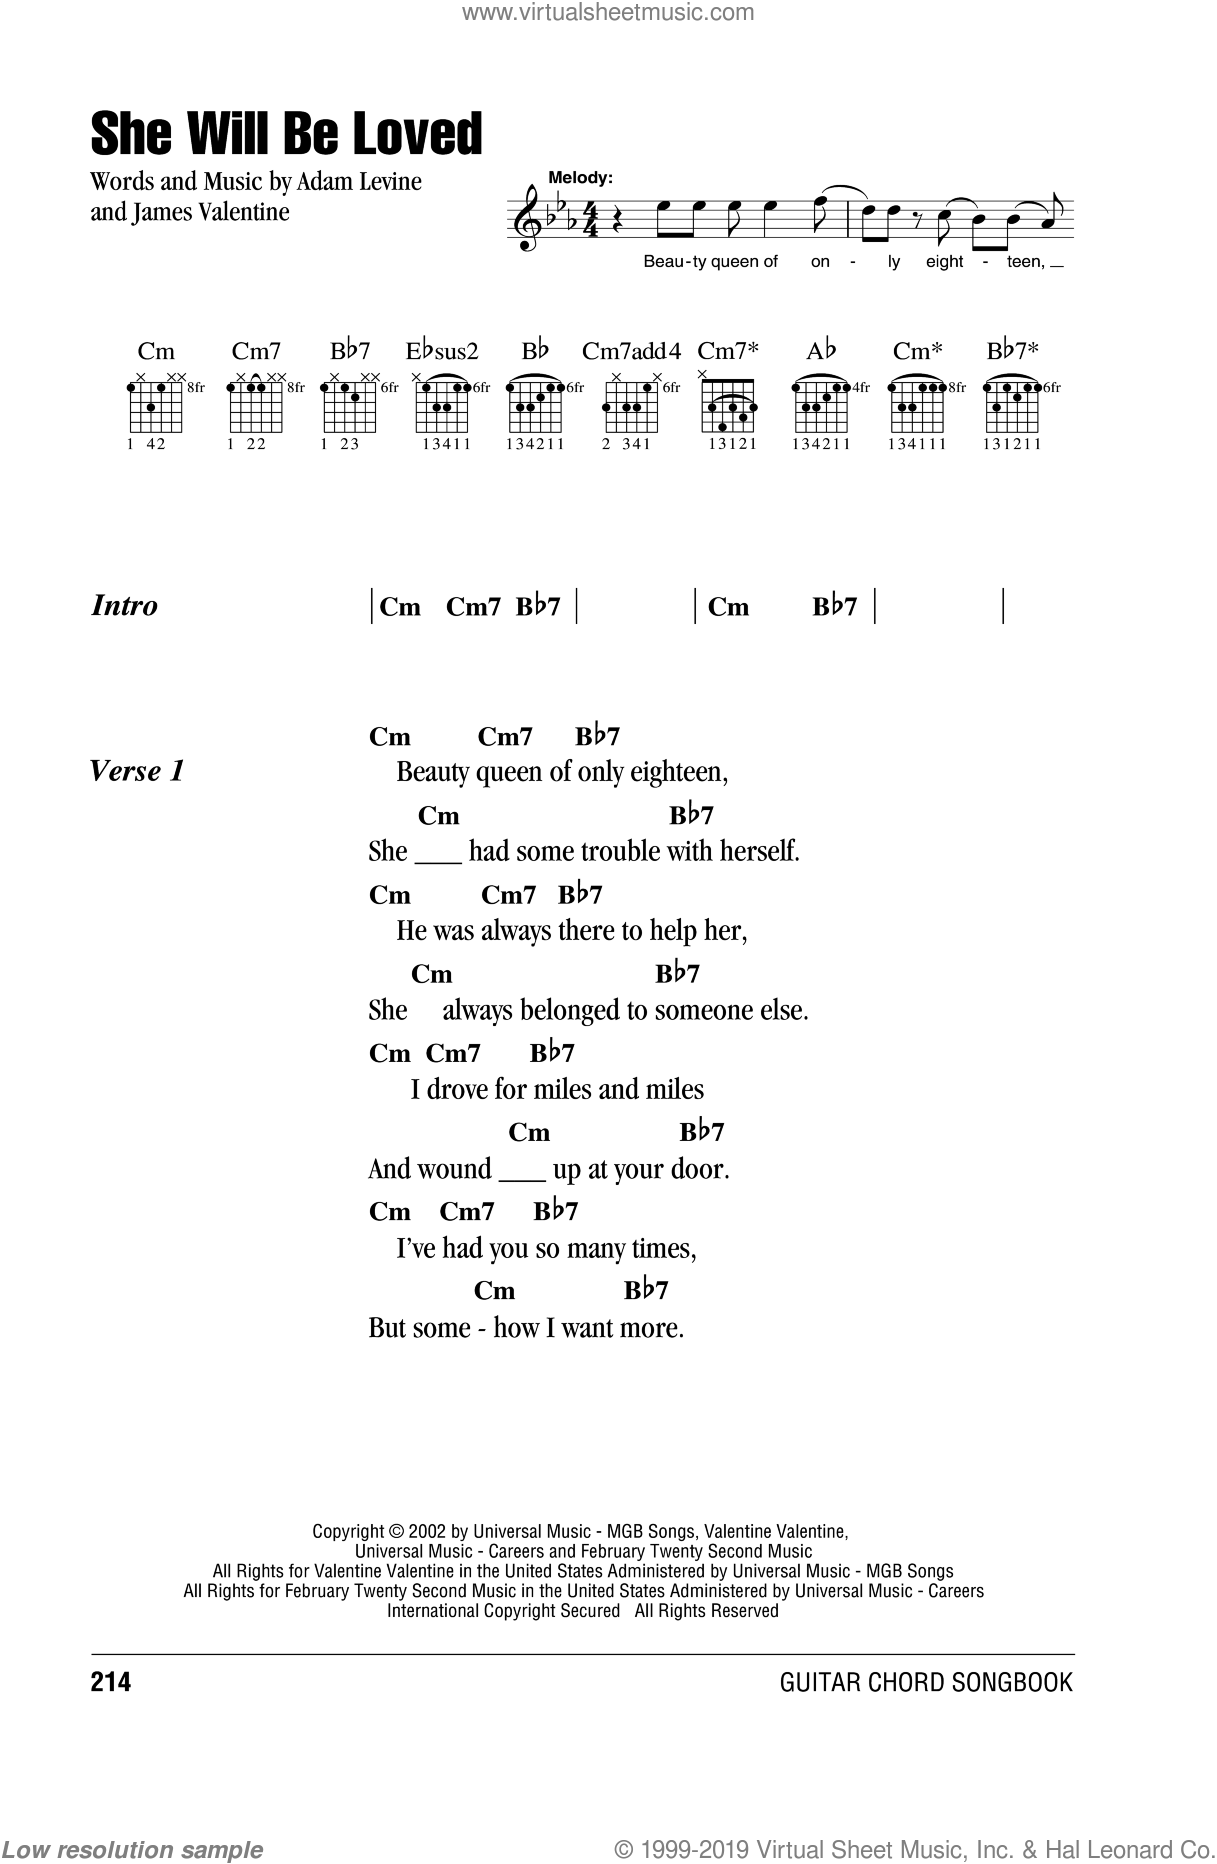 She Will Be Loved sheet music for guitar (chords) by Maroon 5, Adam Levine and James Valentine. Score Image Preview.